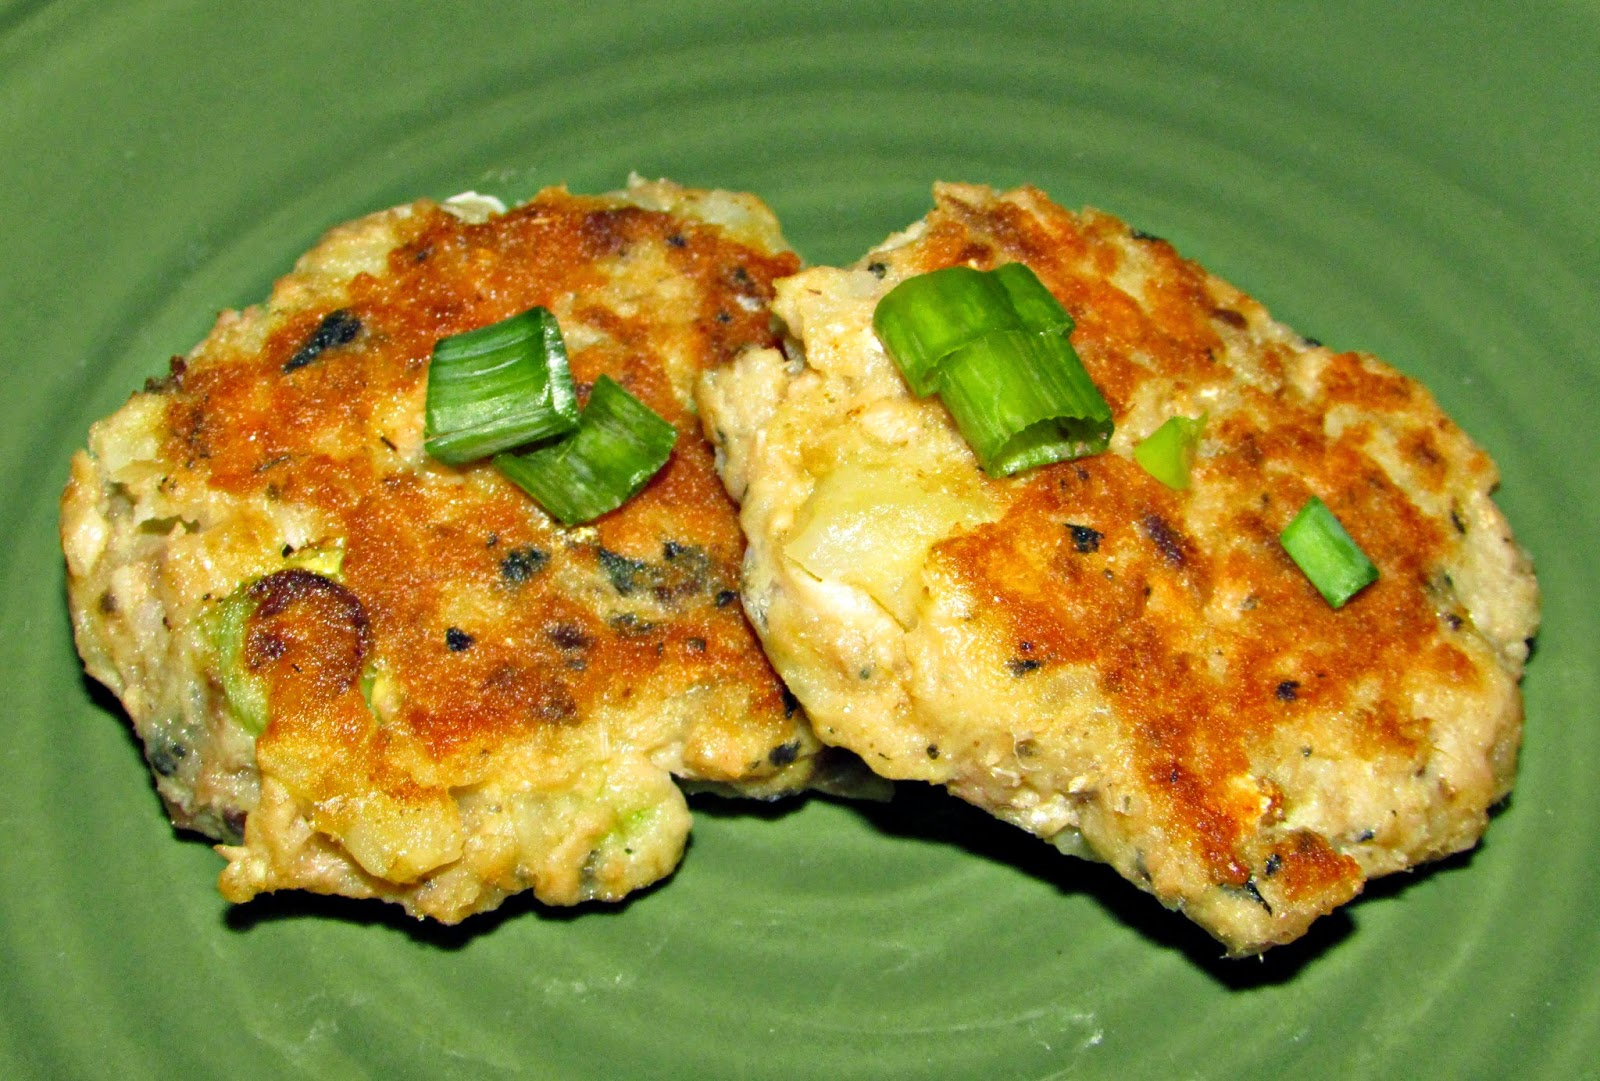 ... With Carlee: Salmon & Potato Patties - Inspired by Grandma Rees